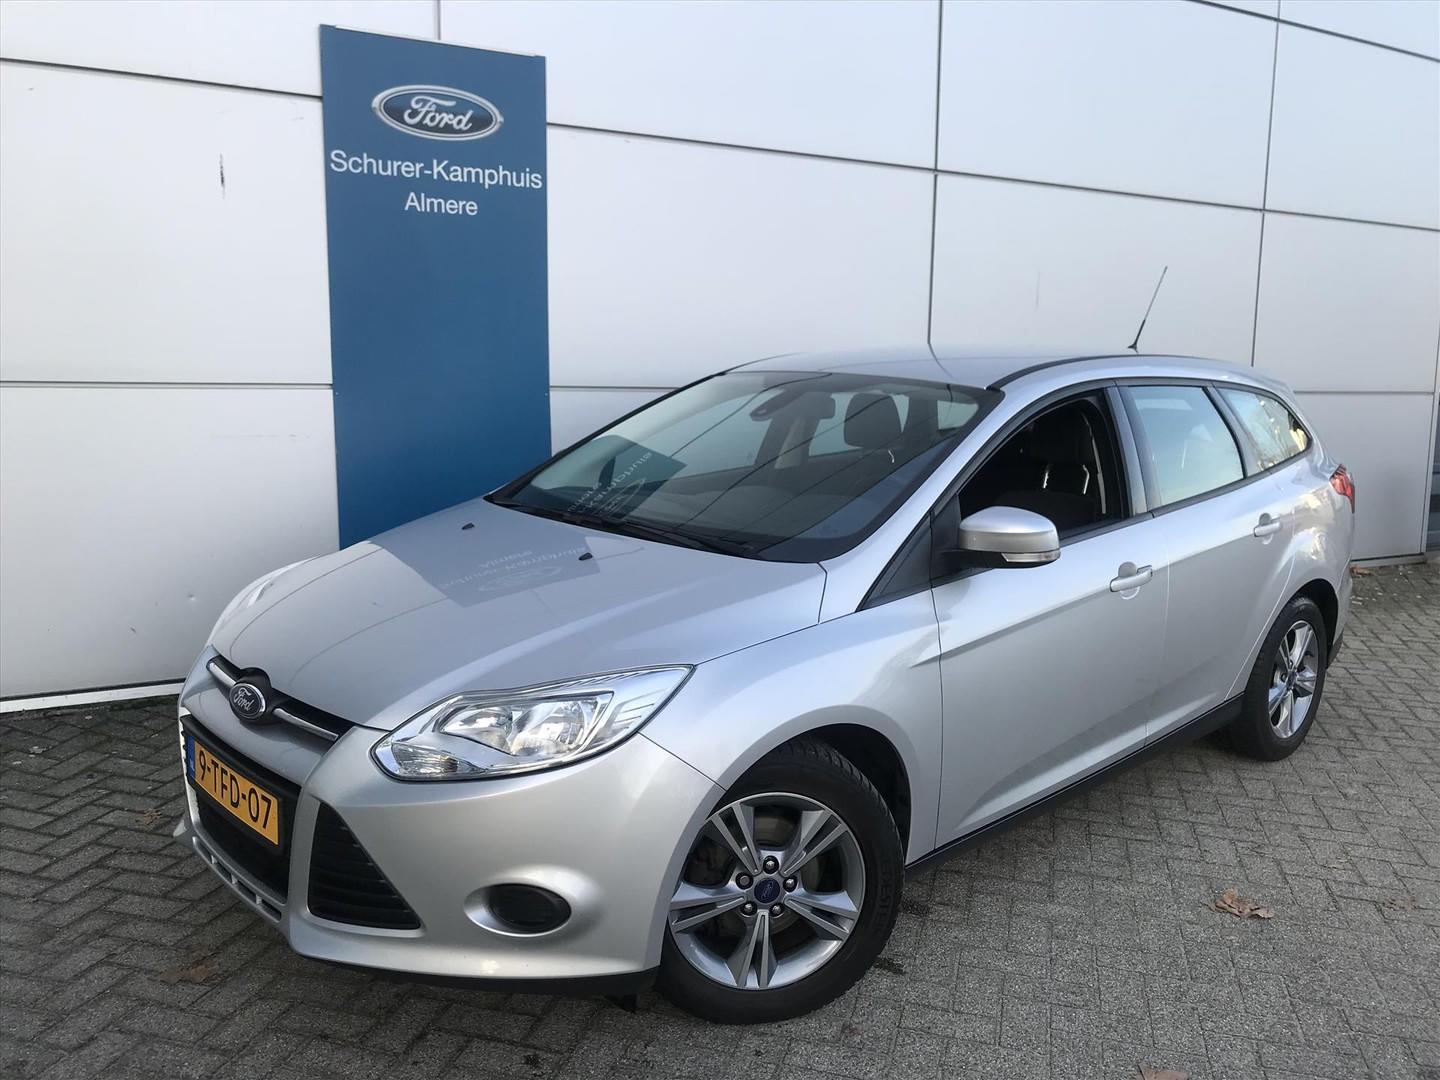 Ford Focus 1.0 ecoboost edition navigatie airco cruise lichtmetaal